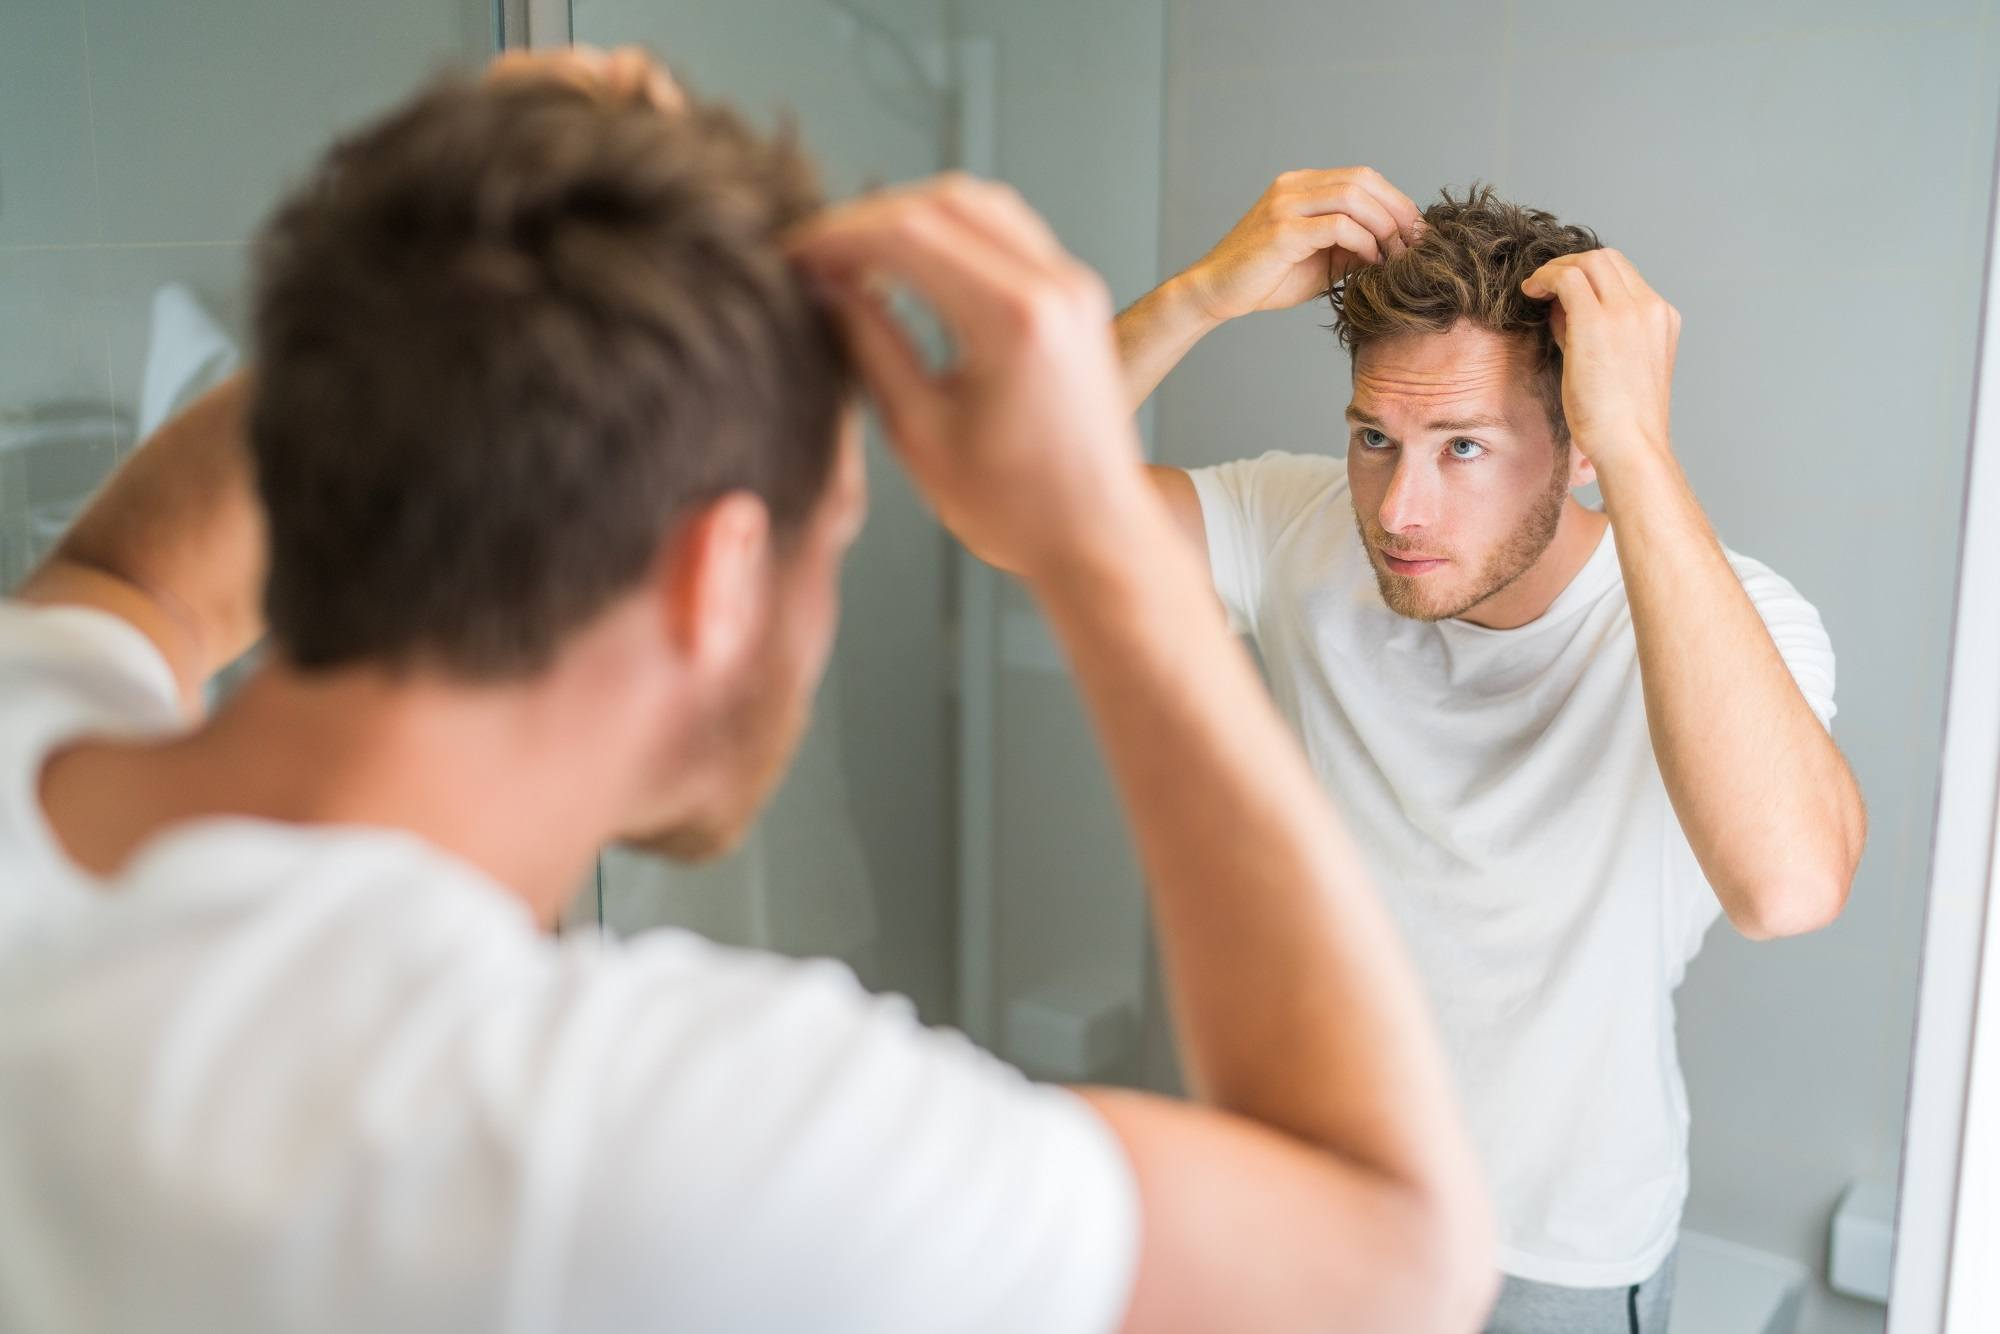 Scalp care for men: Pay attention to scalp